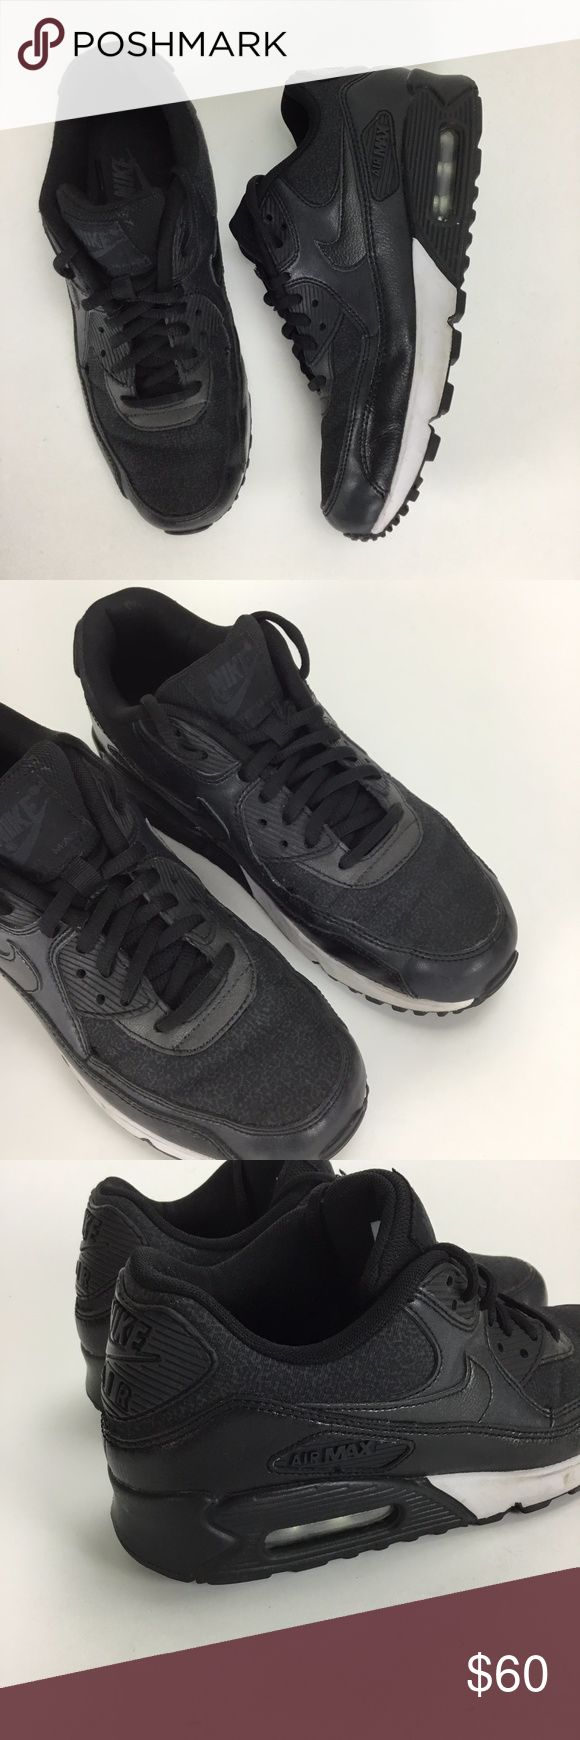 Nike Air Max 1 Black White Leather & Nylon Size 8 Nike Air Max 1 Black & White Leather & Nylon Size 8 . Lace Up. Excellent Condition Nike Shoes Athletic Shoes